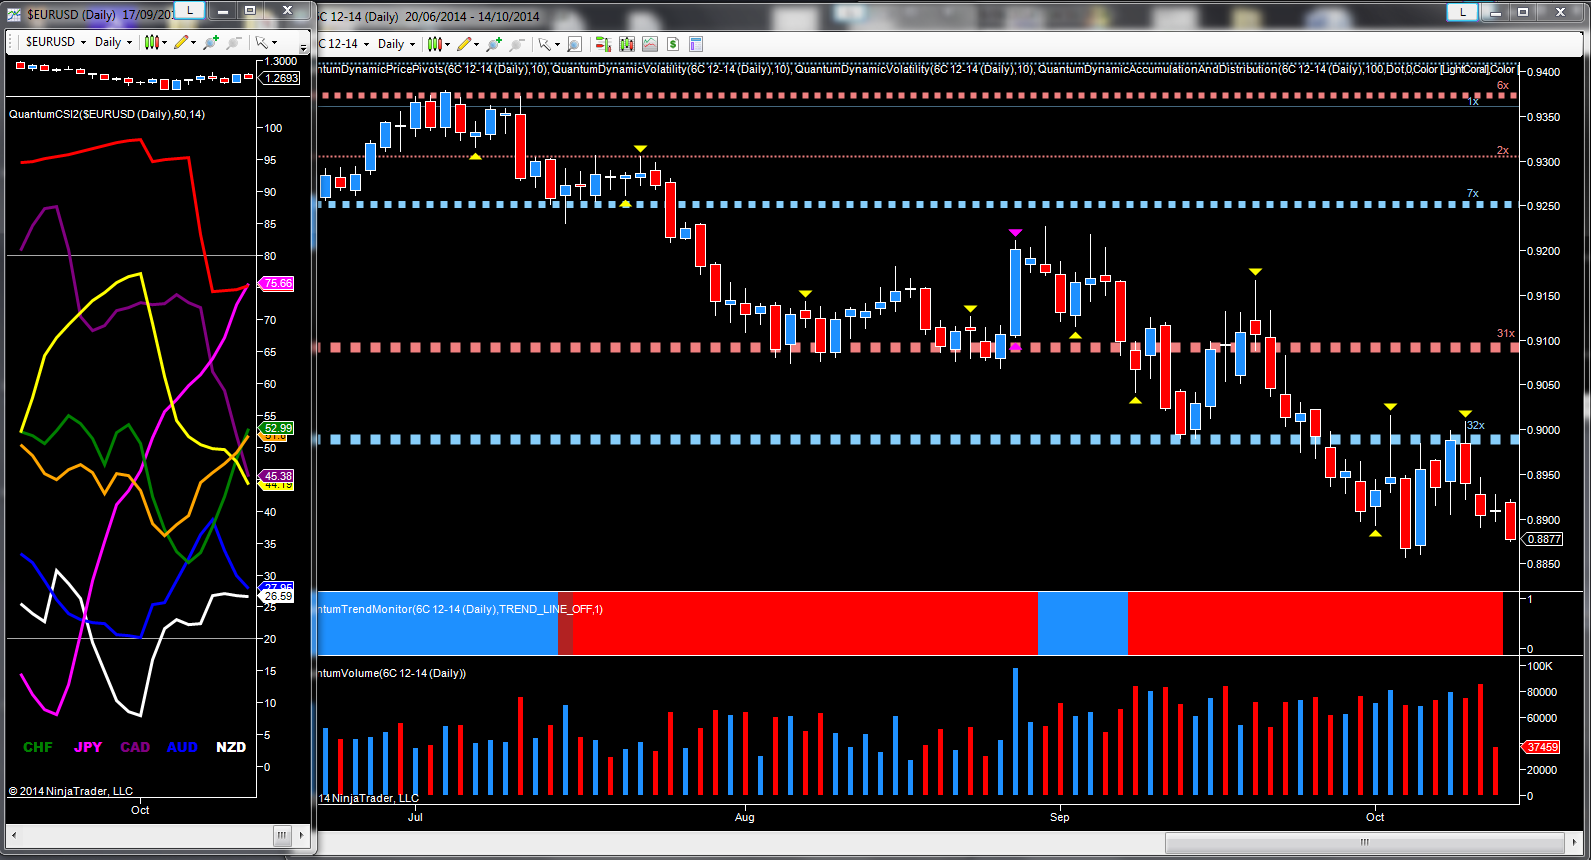 CAD/USD daily chart